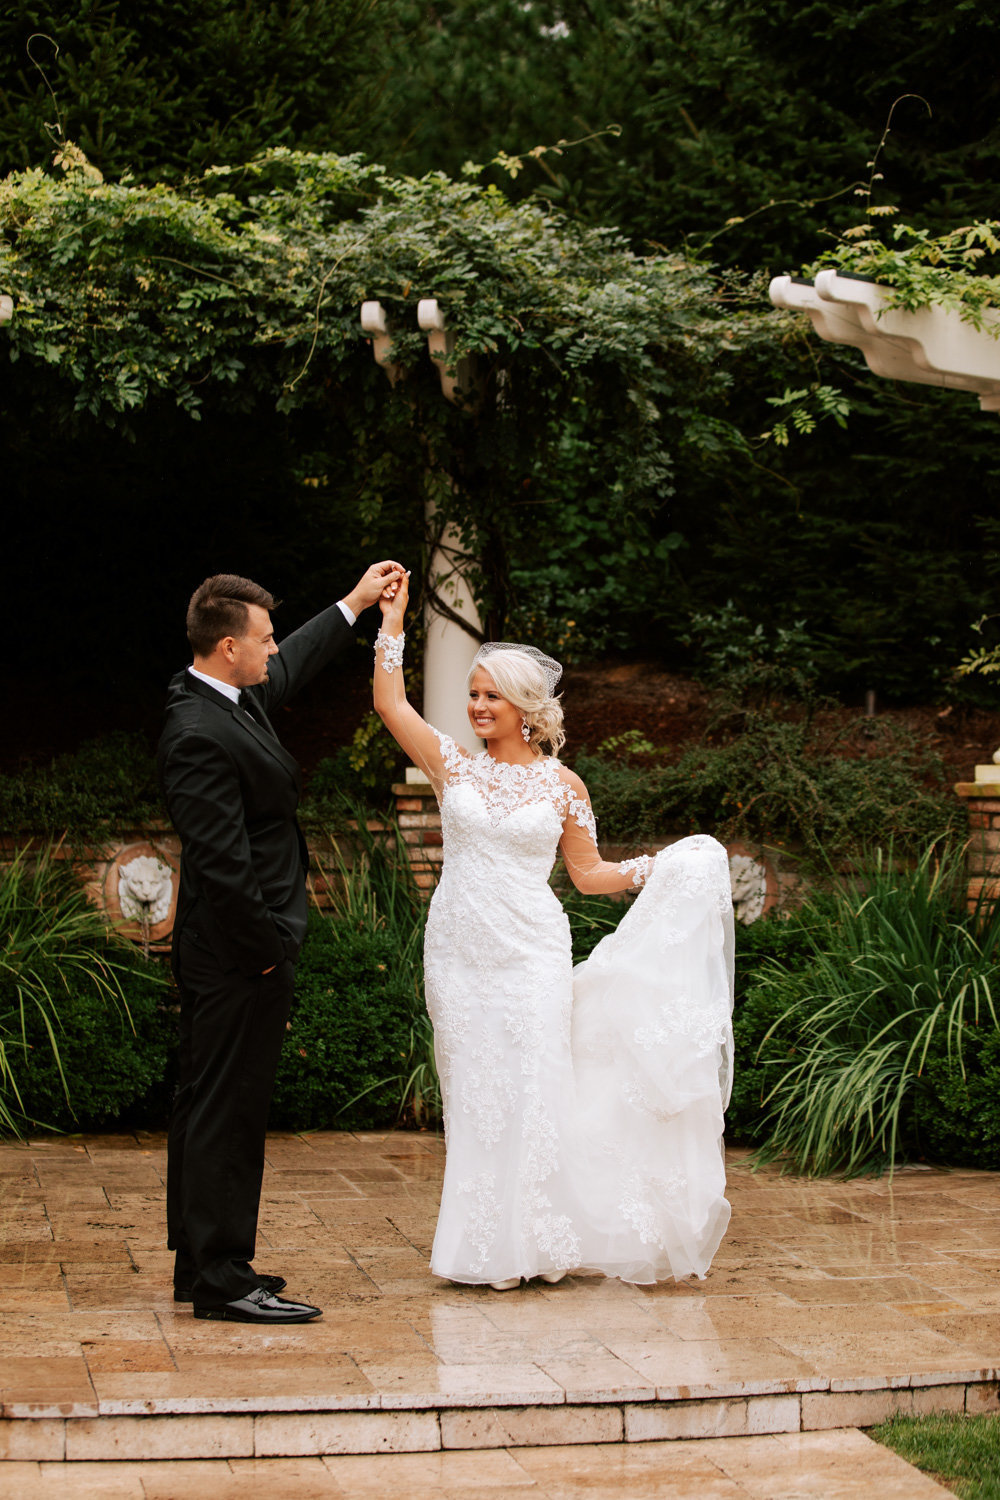 Wedding-Photographer-Lafayette-Indiana-69